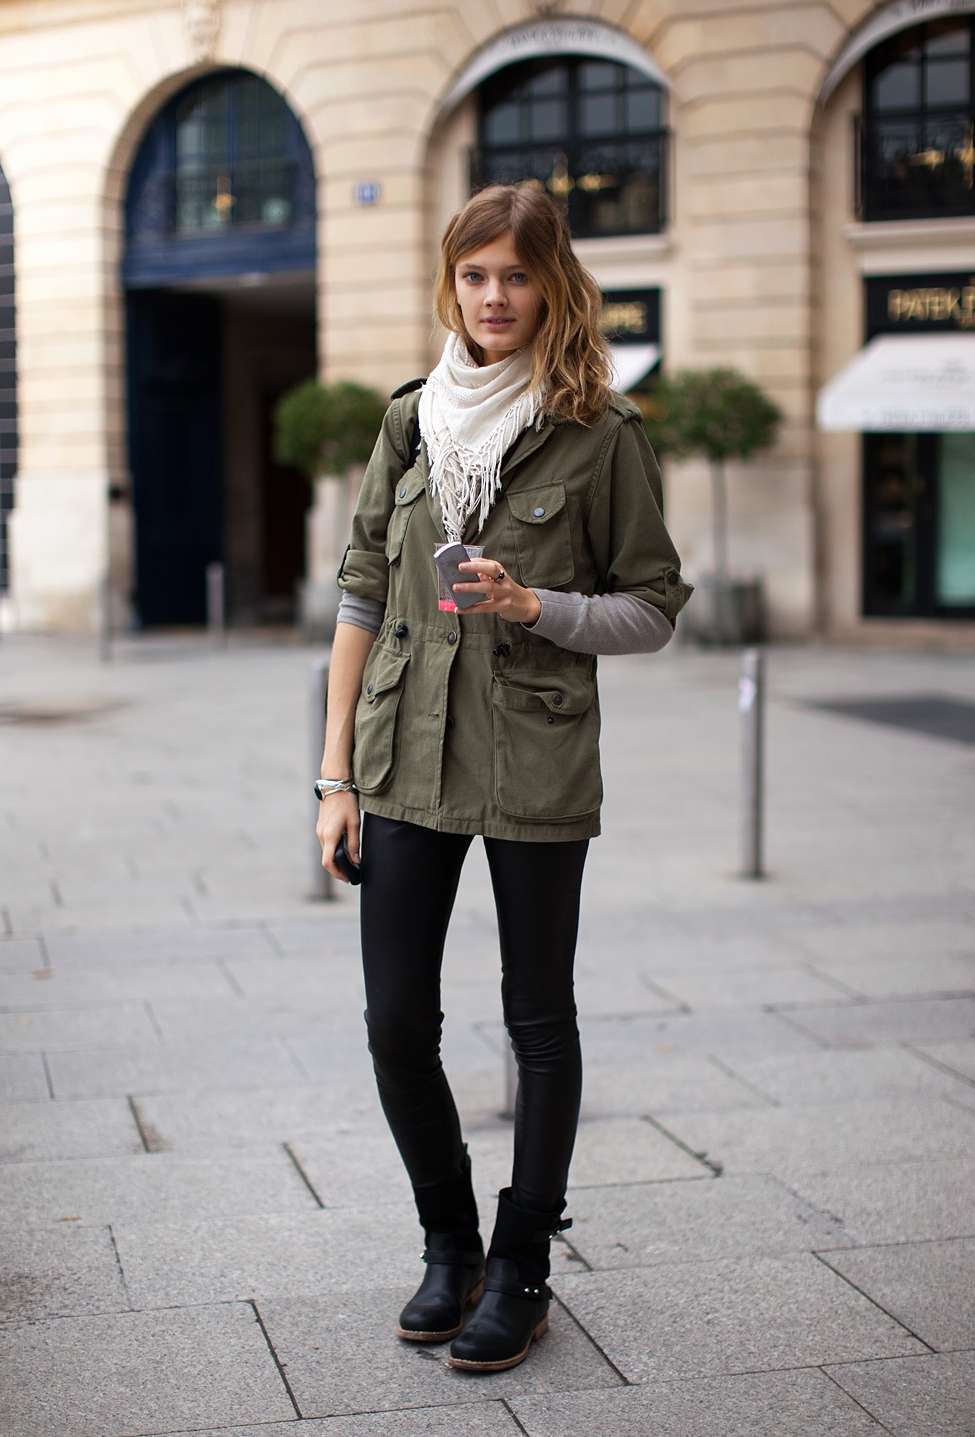 You 39 Re In The Army Now The Military Trend For Fall 2013 The Fashion Tag Blog